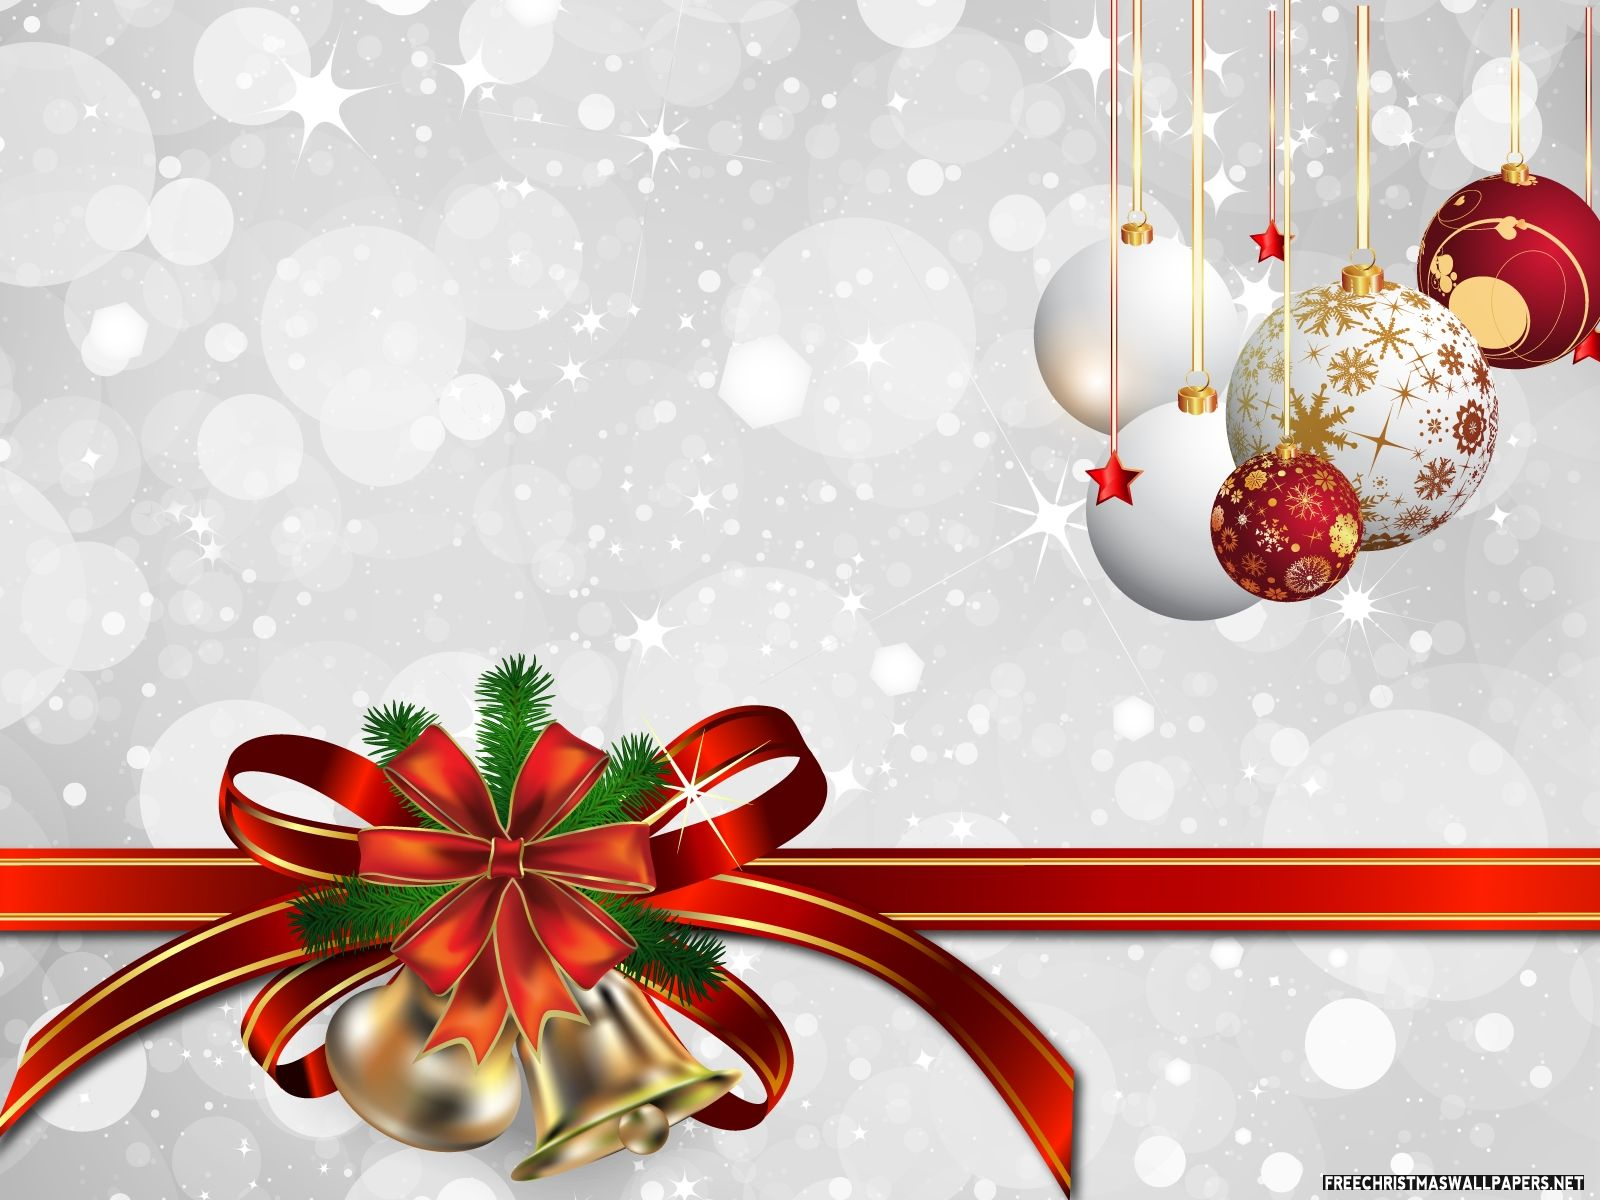 Christmas card template google interesting pins pinterest amazing collection of best christmas wishes images and pictures absolutely free use these christmas images and pictures as you wish for free m4hsunfo